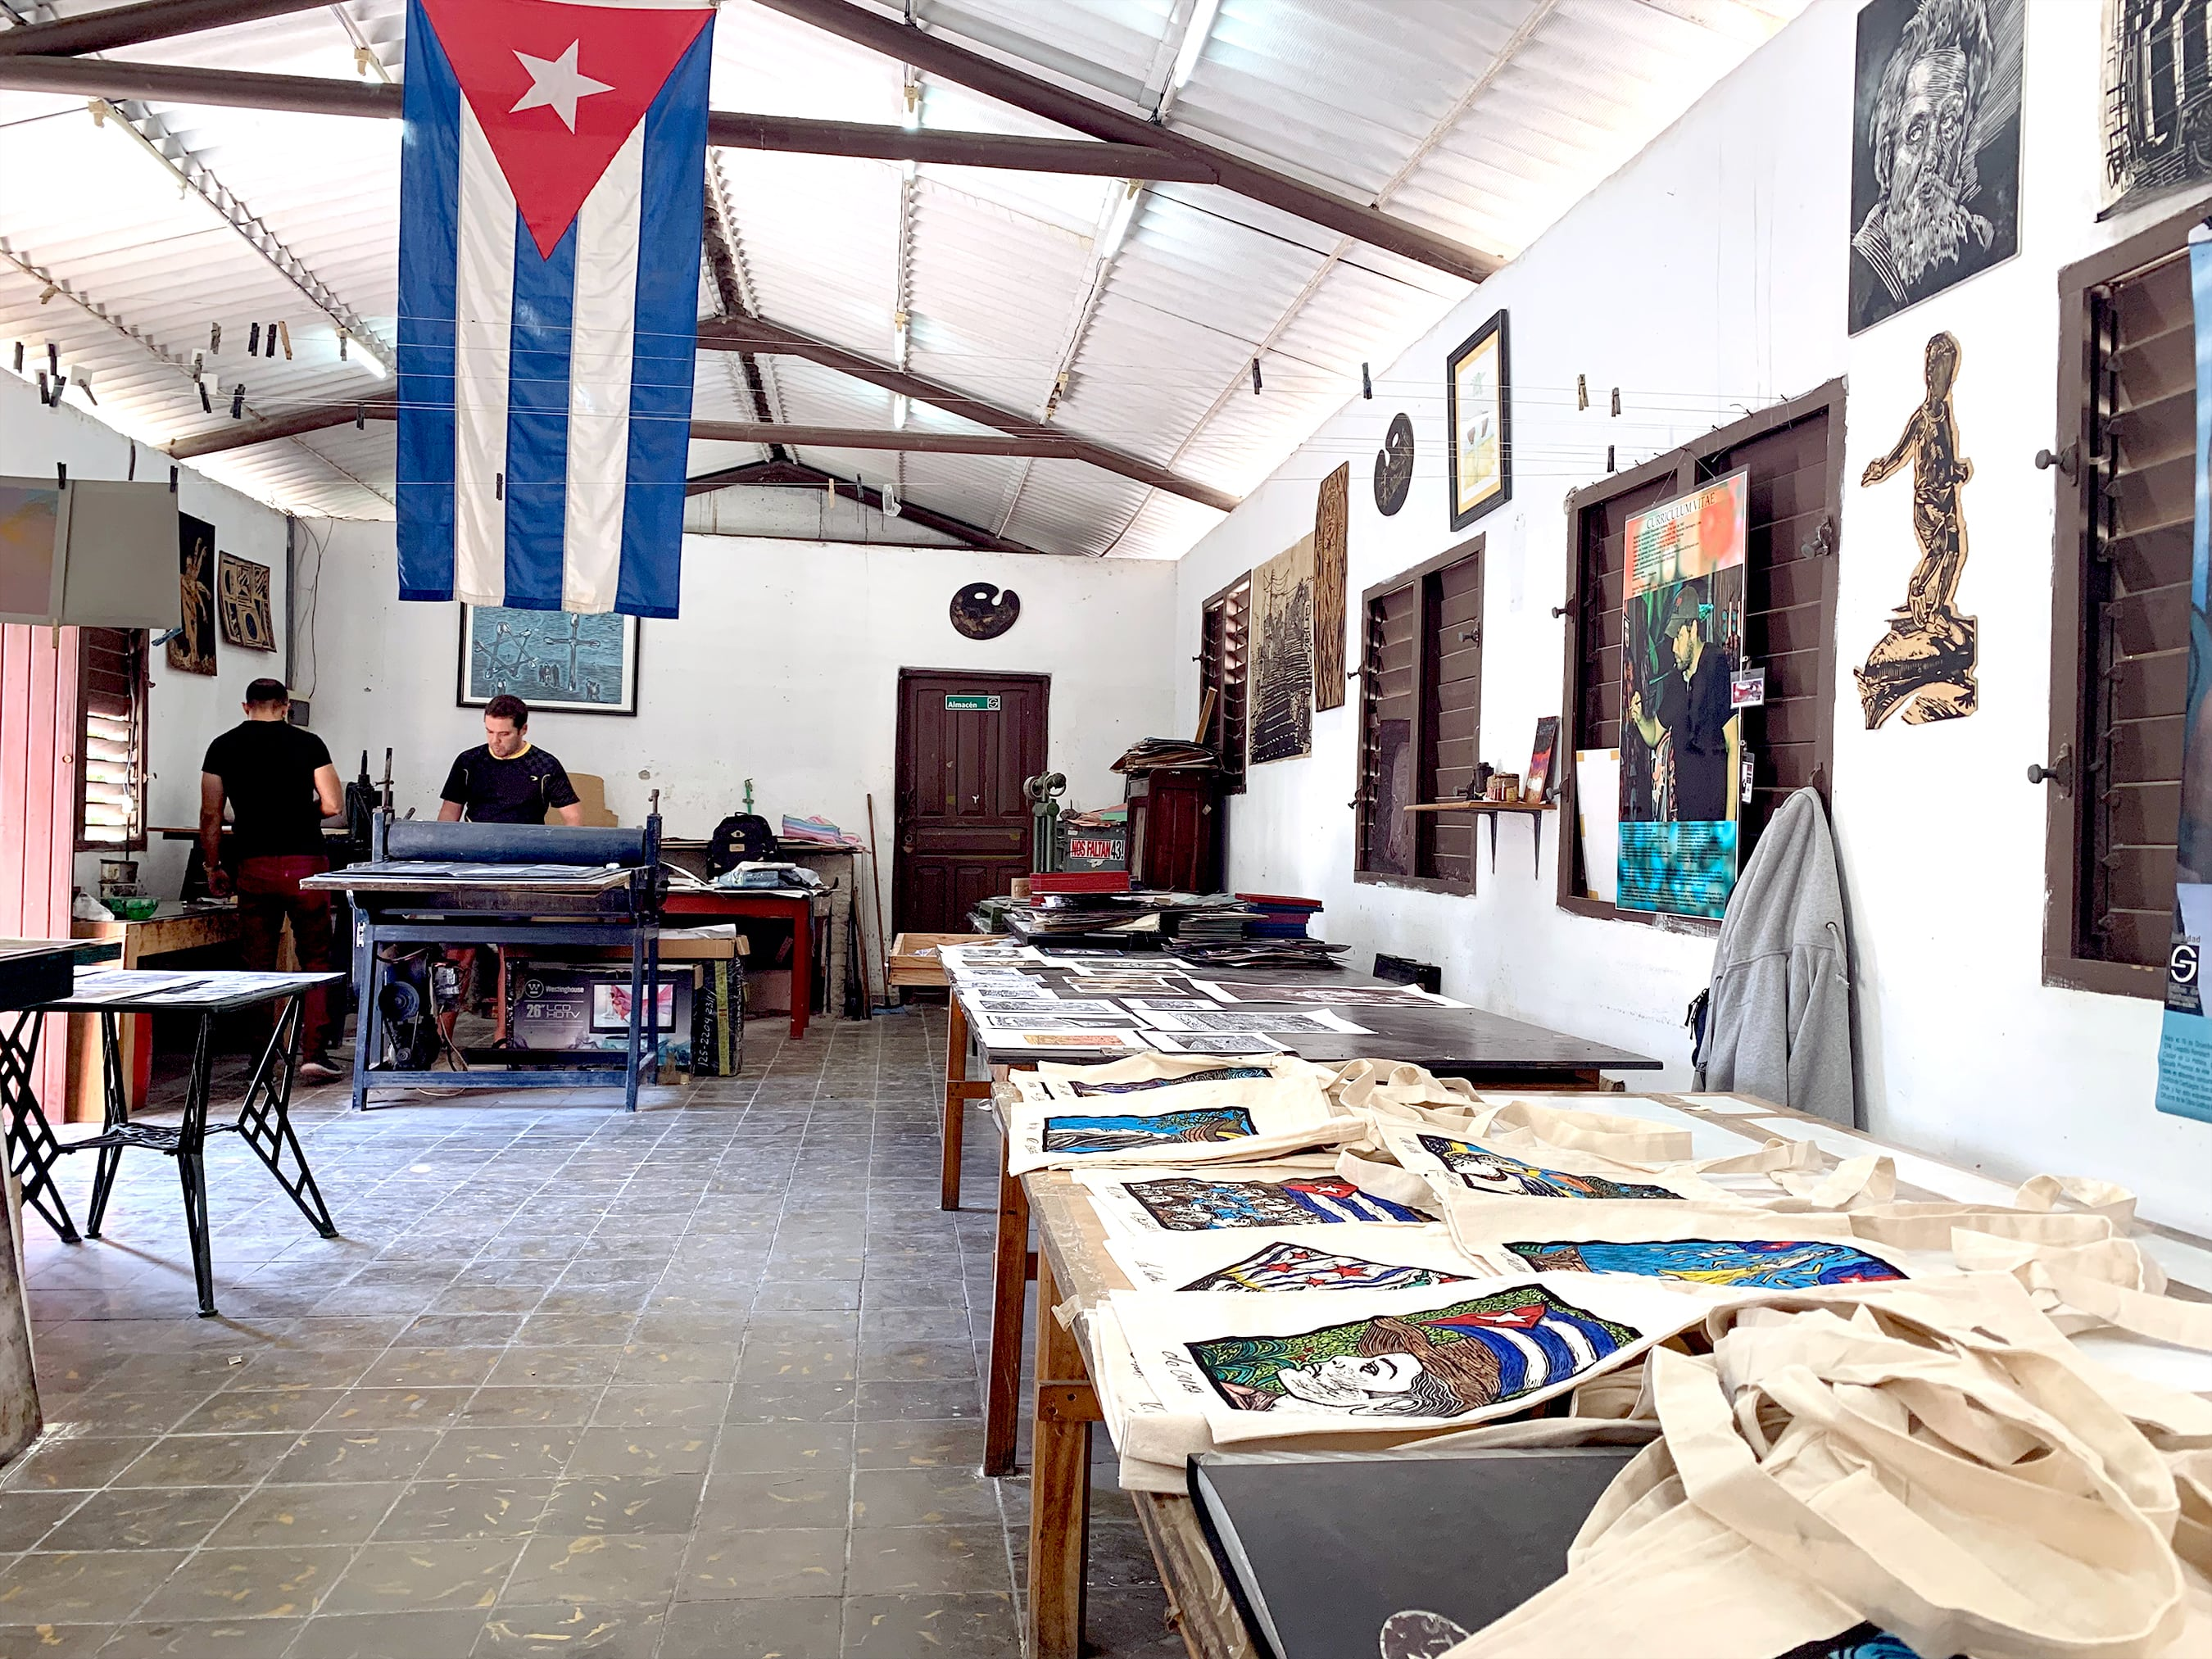 The inside of a woodprint workshop and gallery space space in Cienfuegos, Cuba